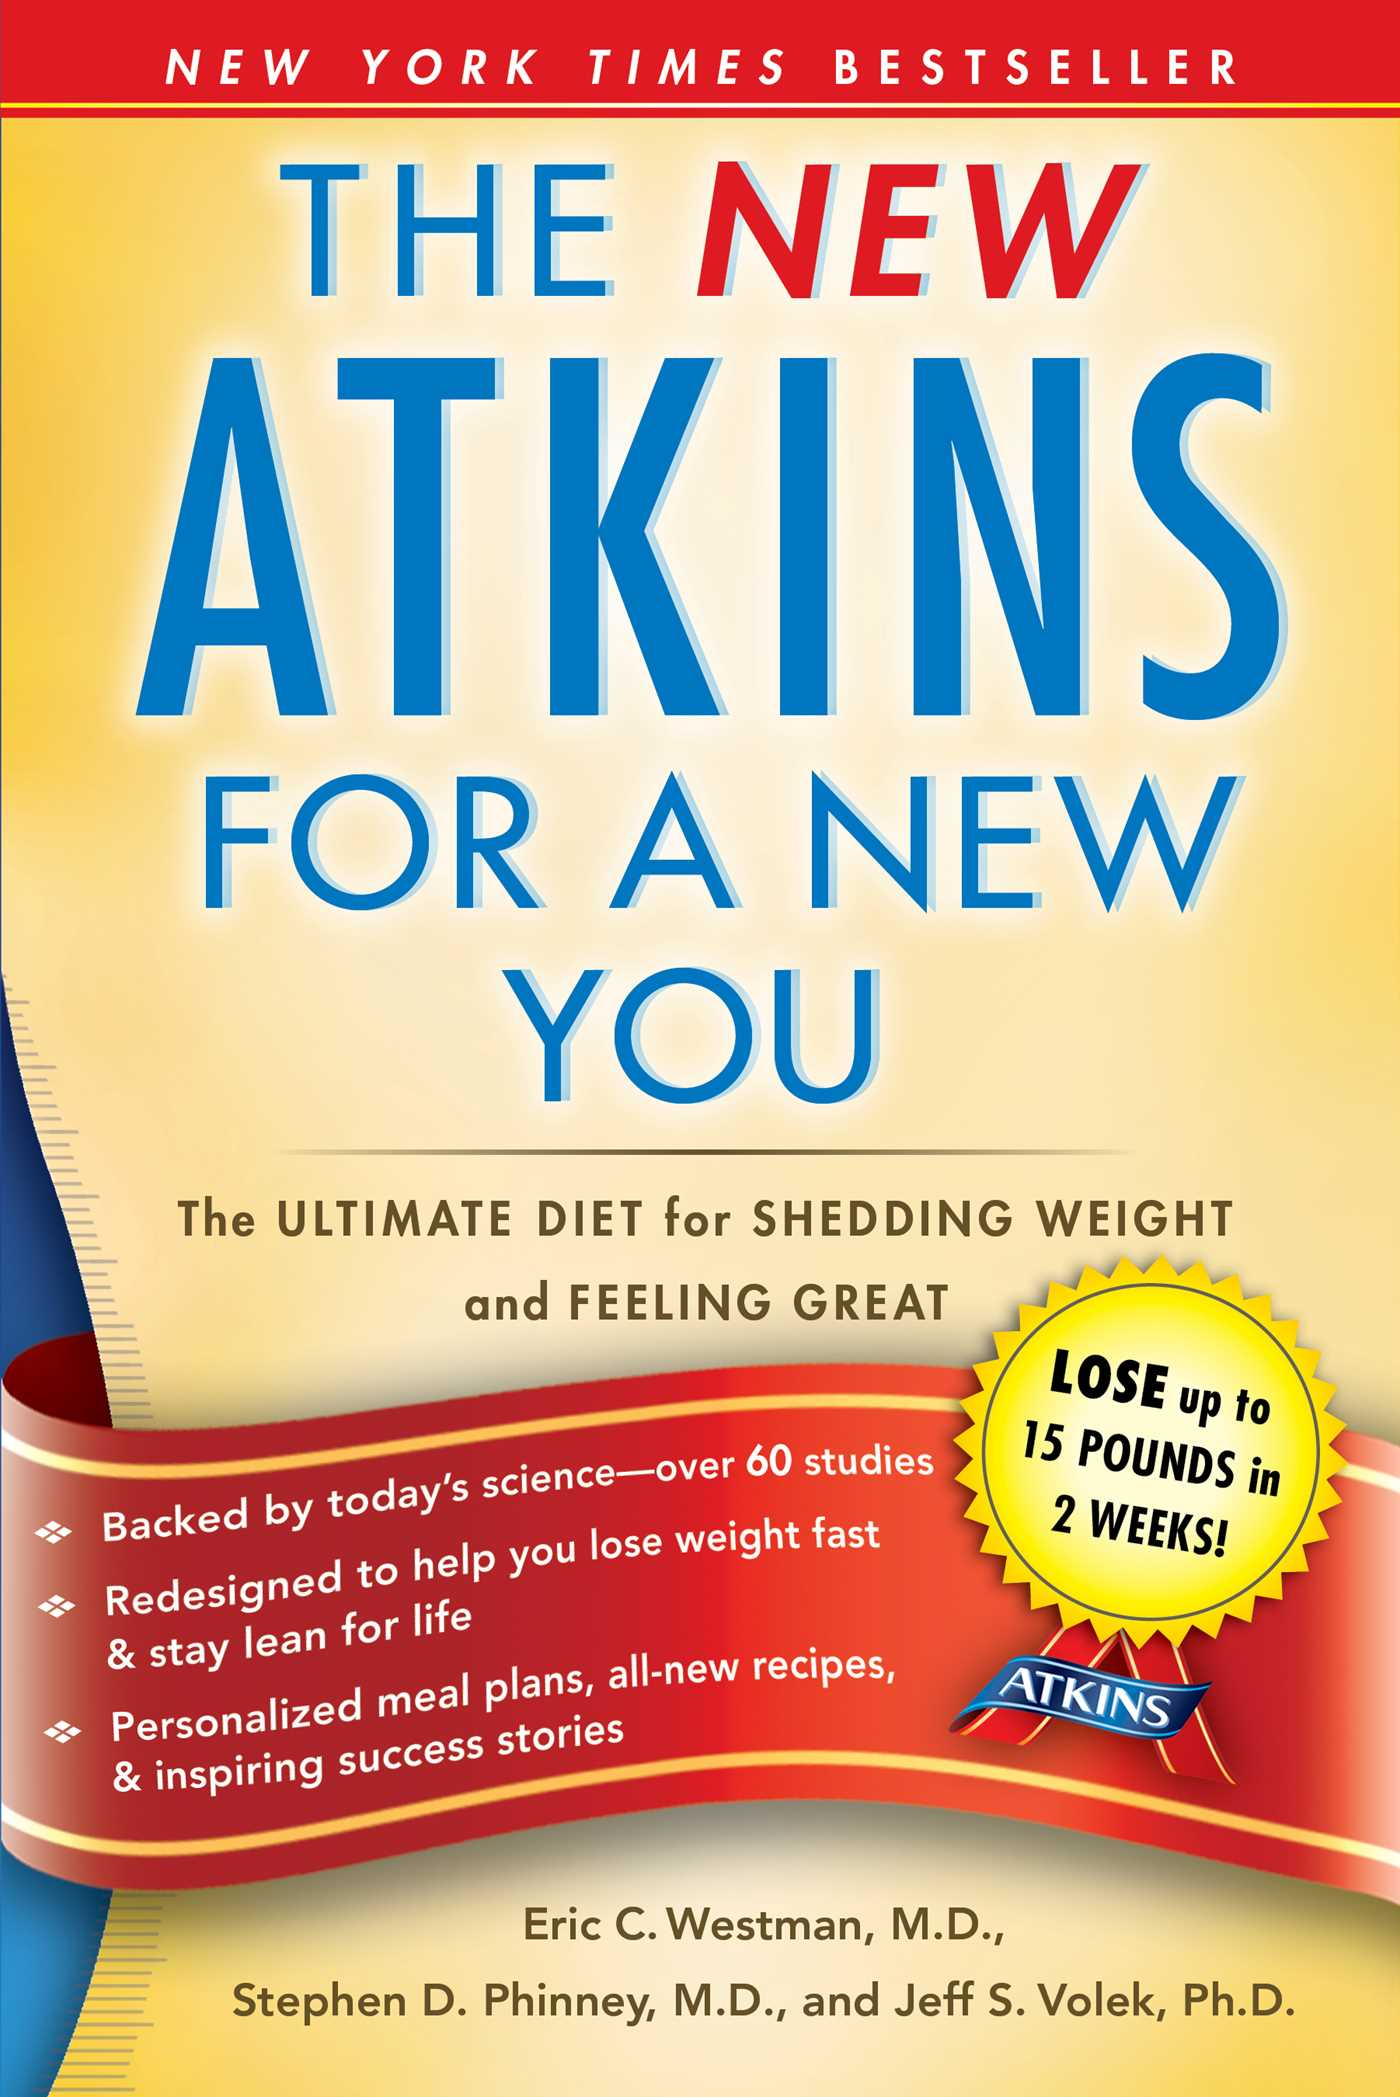 Atkins diet: Know all about this new diet advise